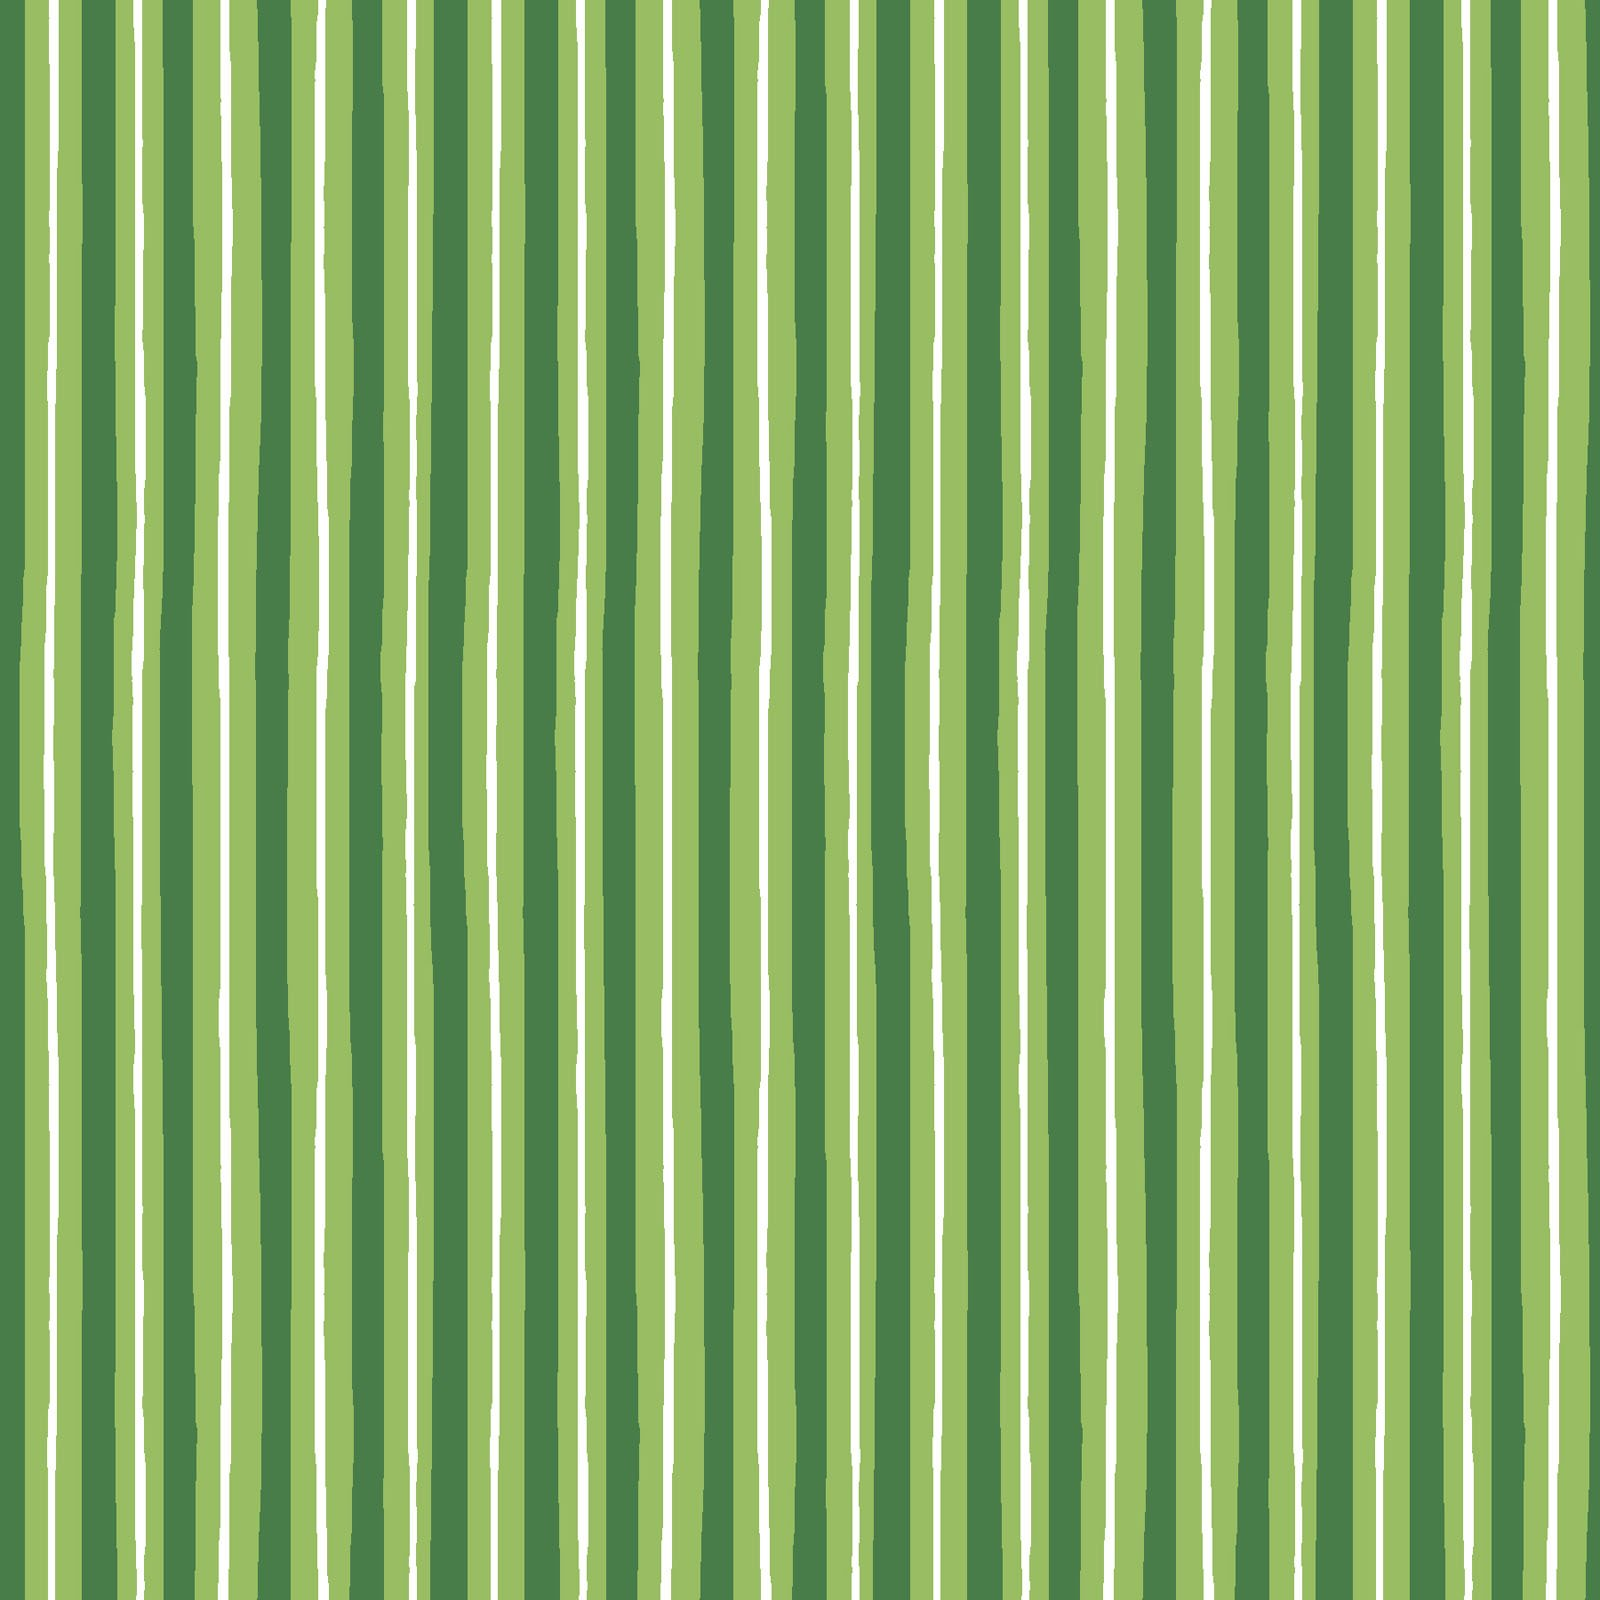 KimberBell Basics Green Little Stripe 8242M-G